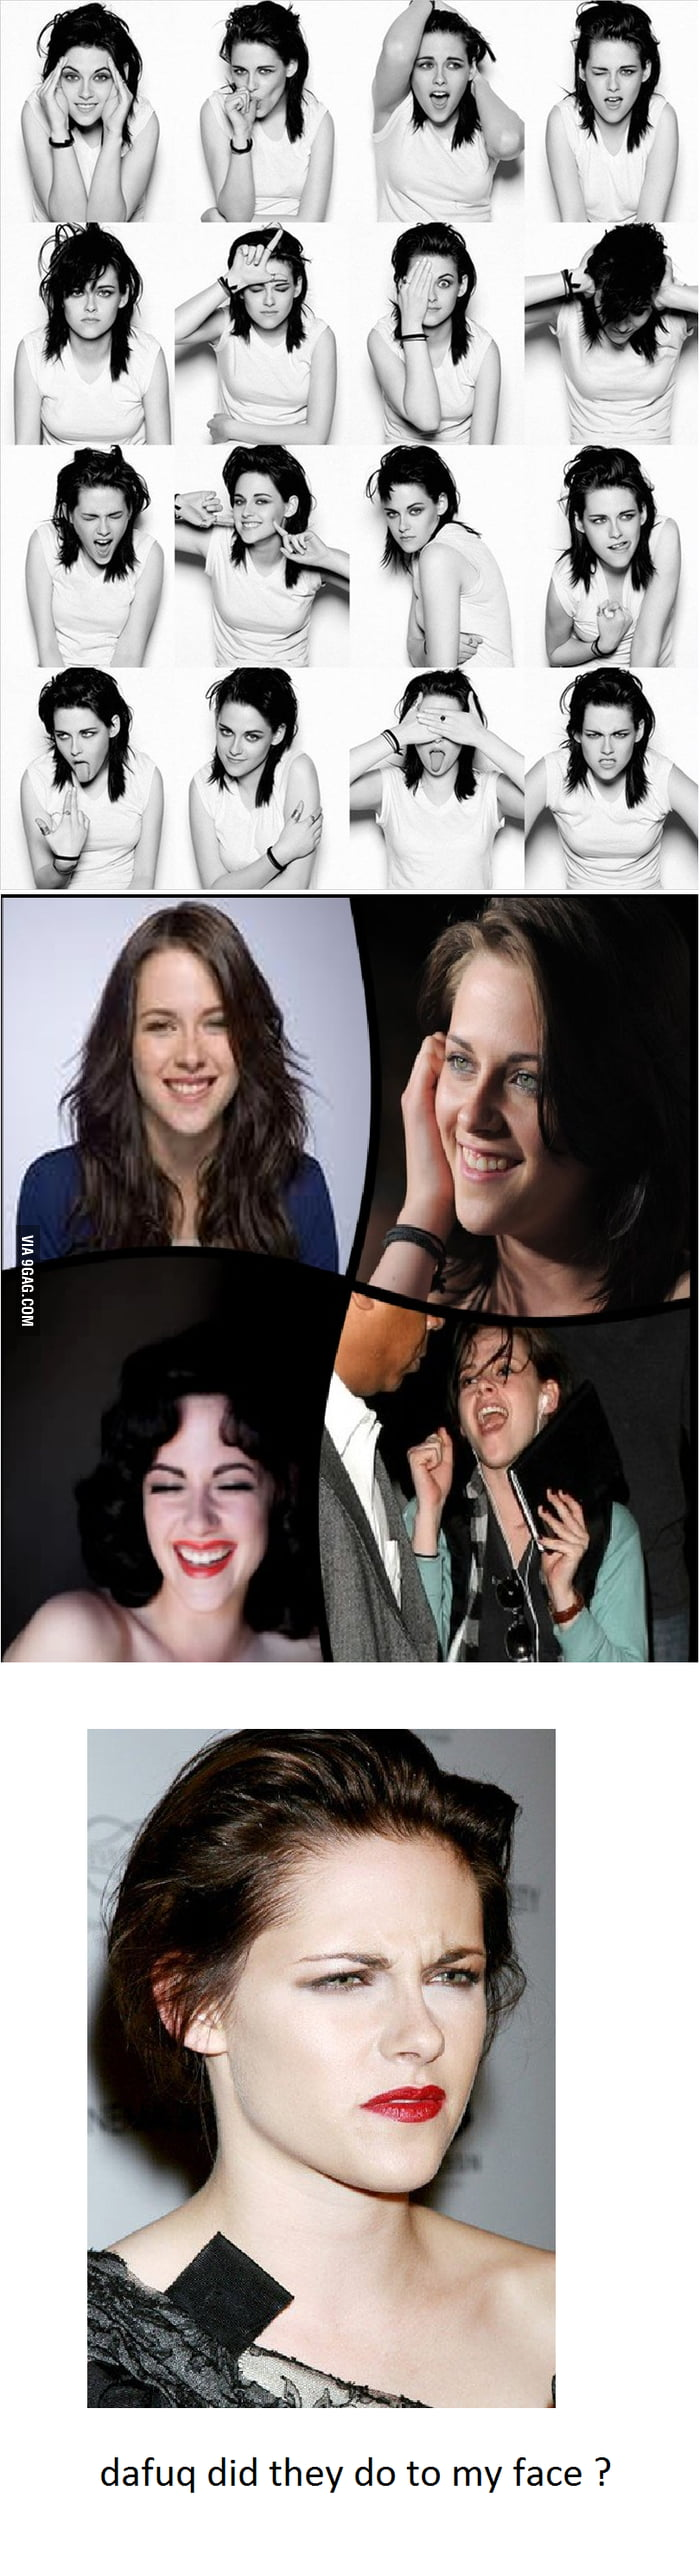 Photoshop Lvl over 9000 : Kristen Stewart